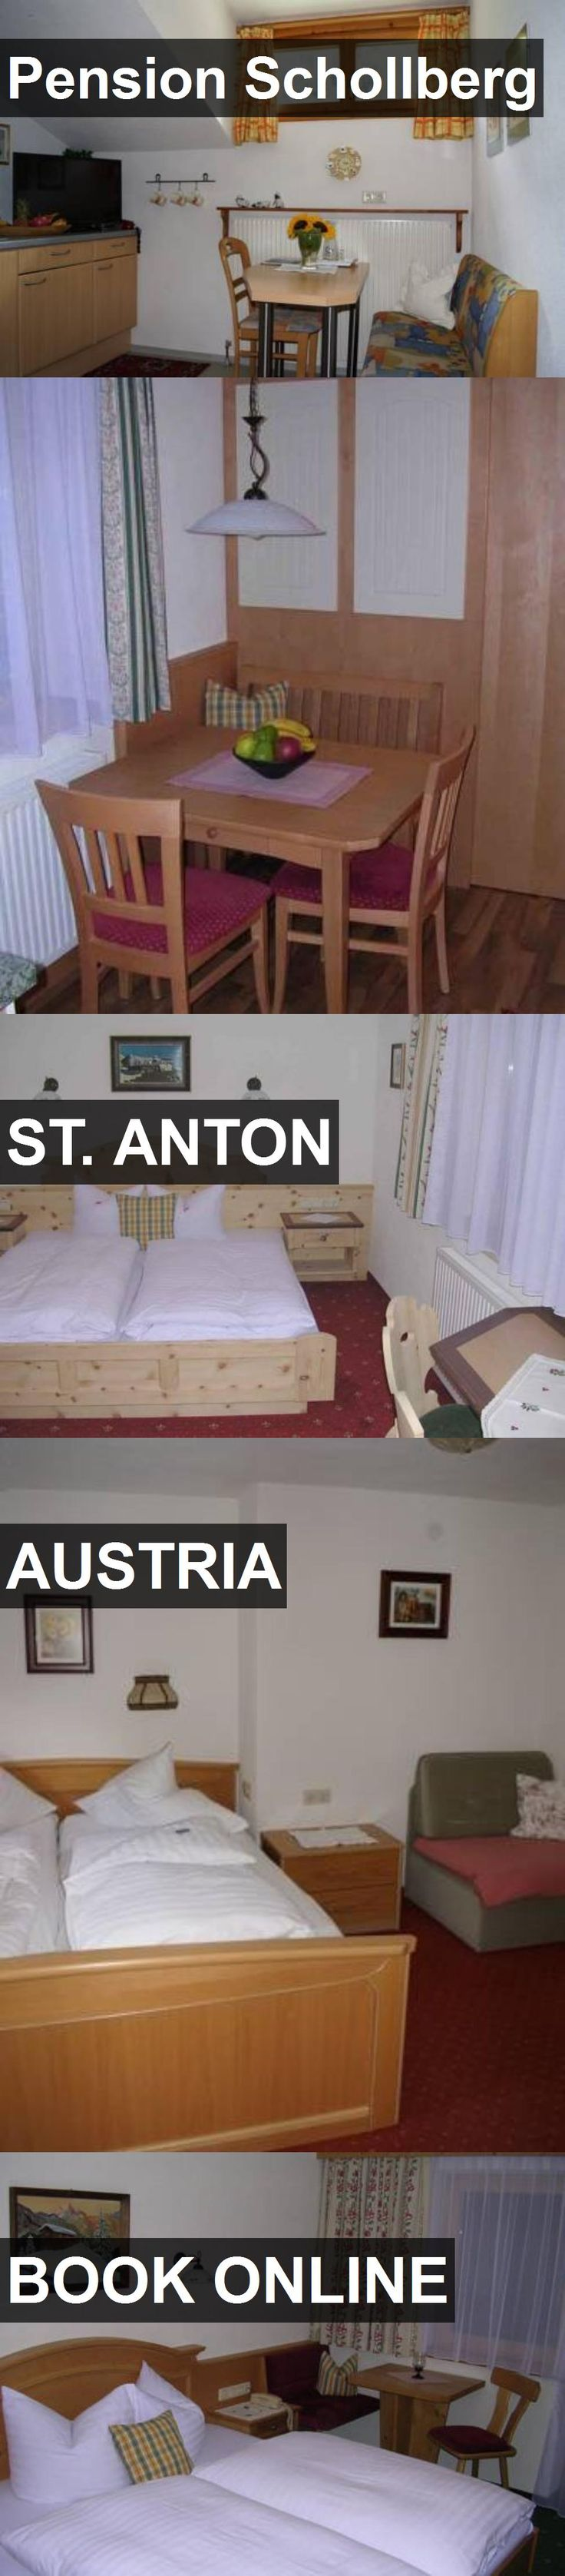 Hotel Pension Schollberg in St. Anton, Austria. For more information, photos, reviews and best prices please follow the link. #Austria #St.Anton #travel #vacation #hotel